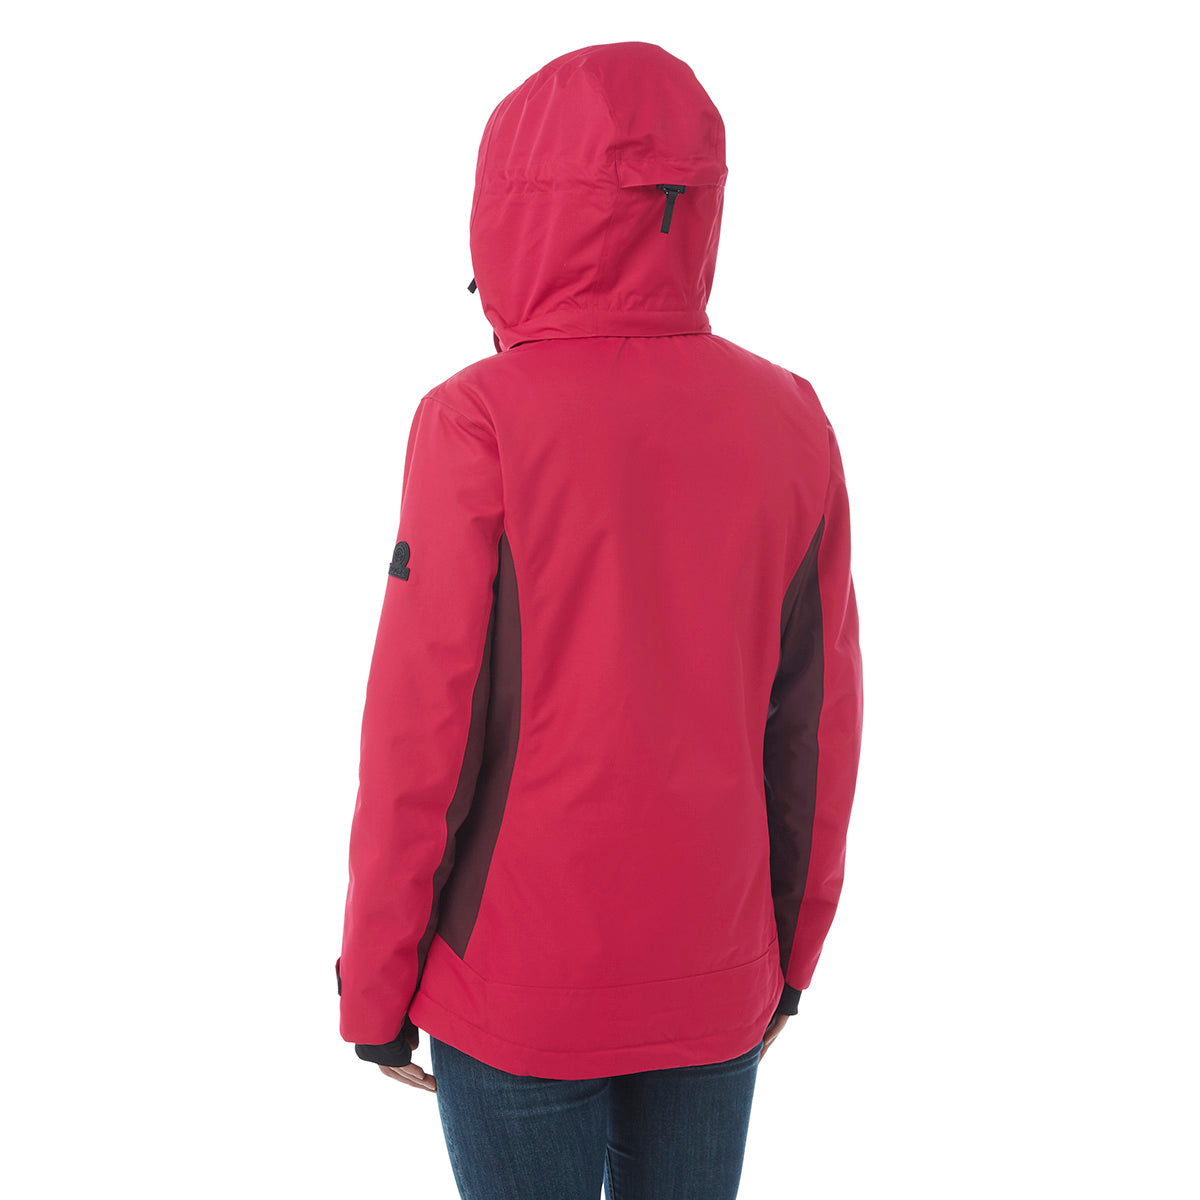 Abbey Womens Waterproof Insulated Ski Jacket - Cerise/Deep Port Marl image 4